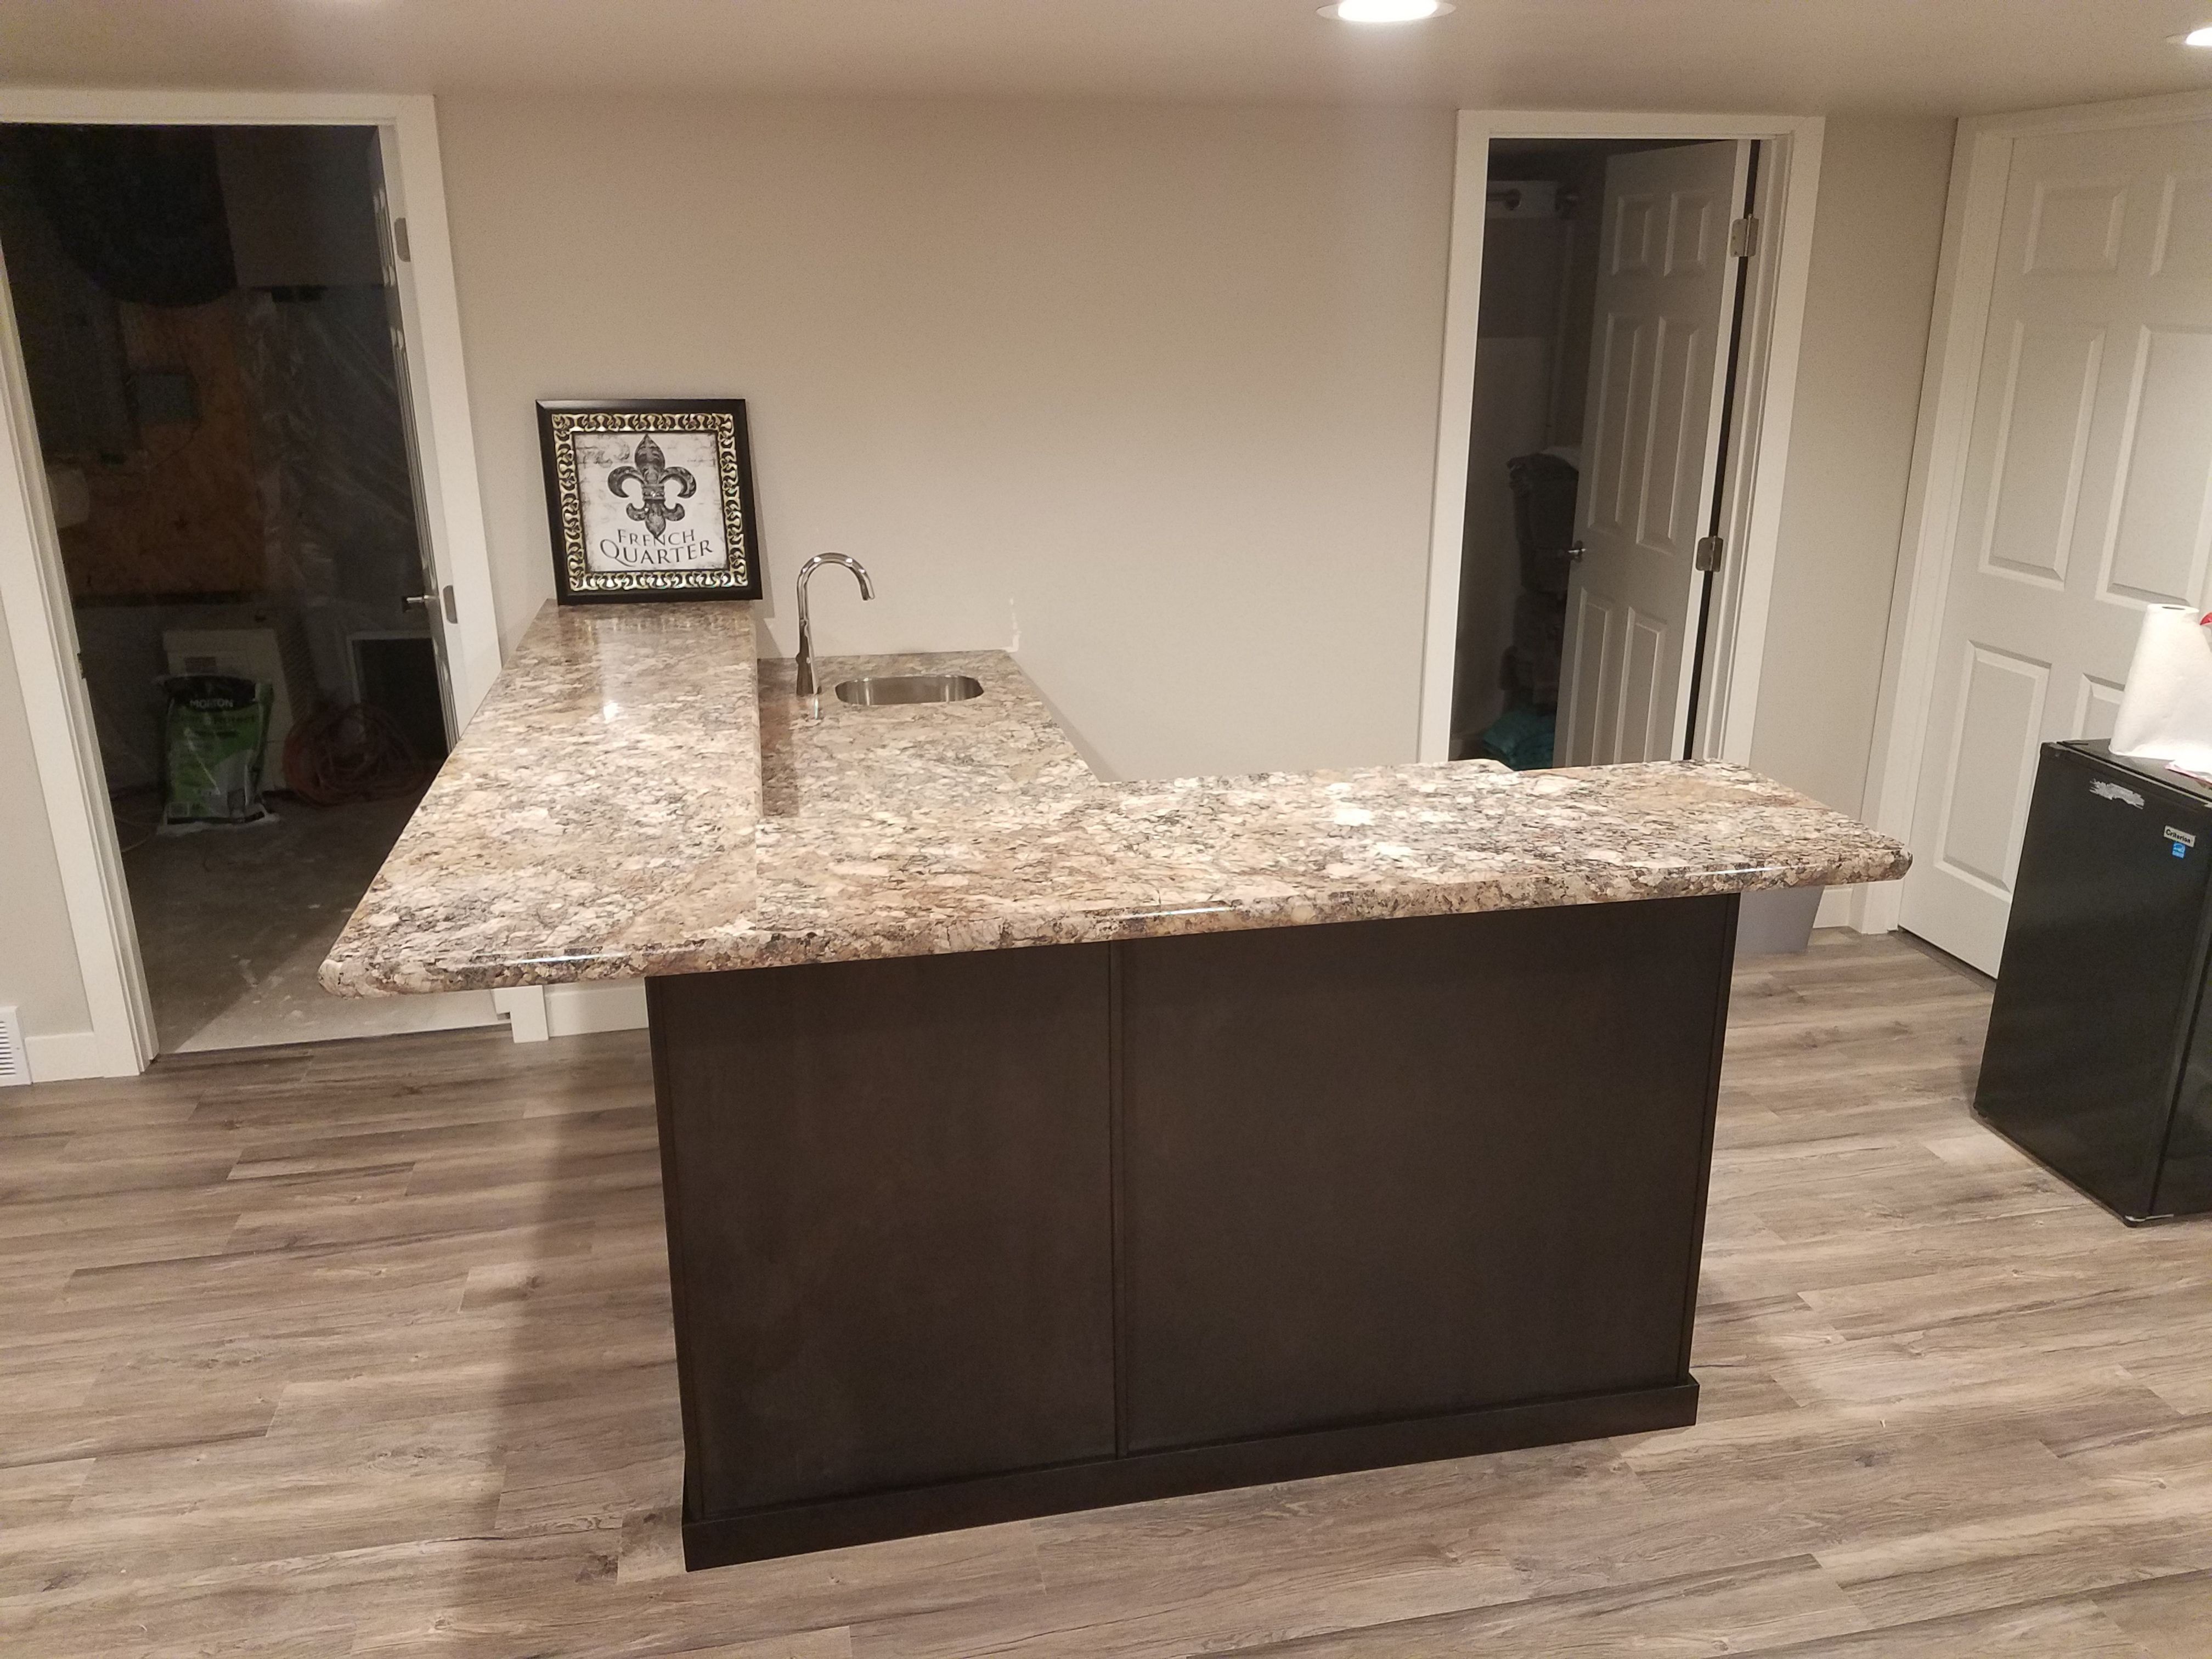 Espresso Cabinets With Winter Carnival Laminate Countertops